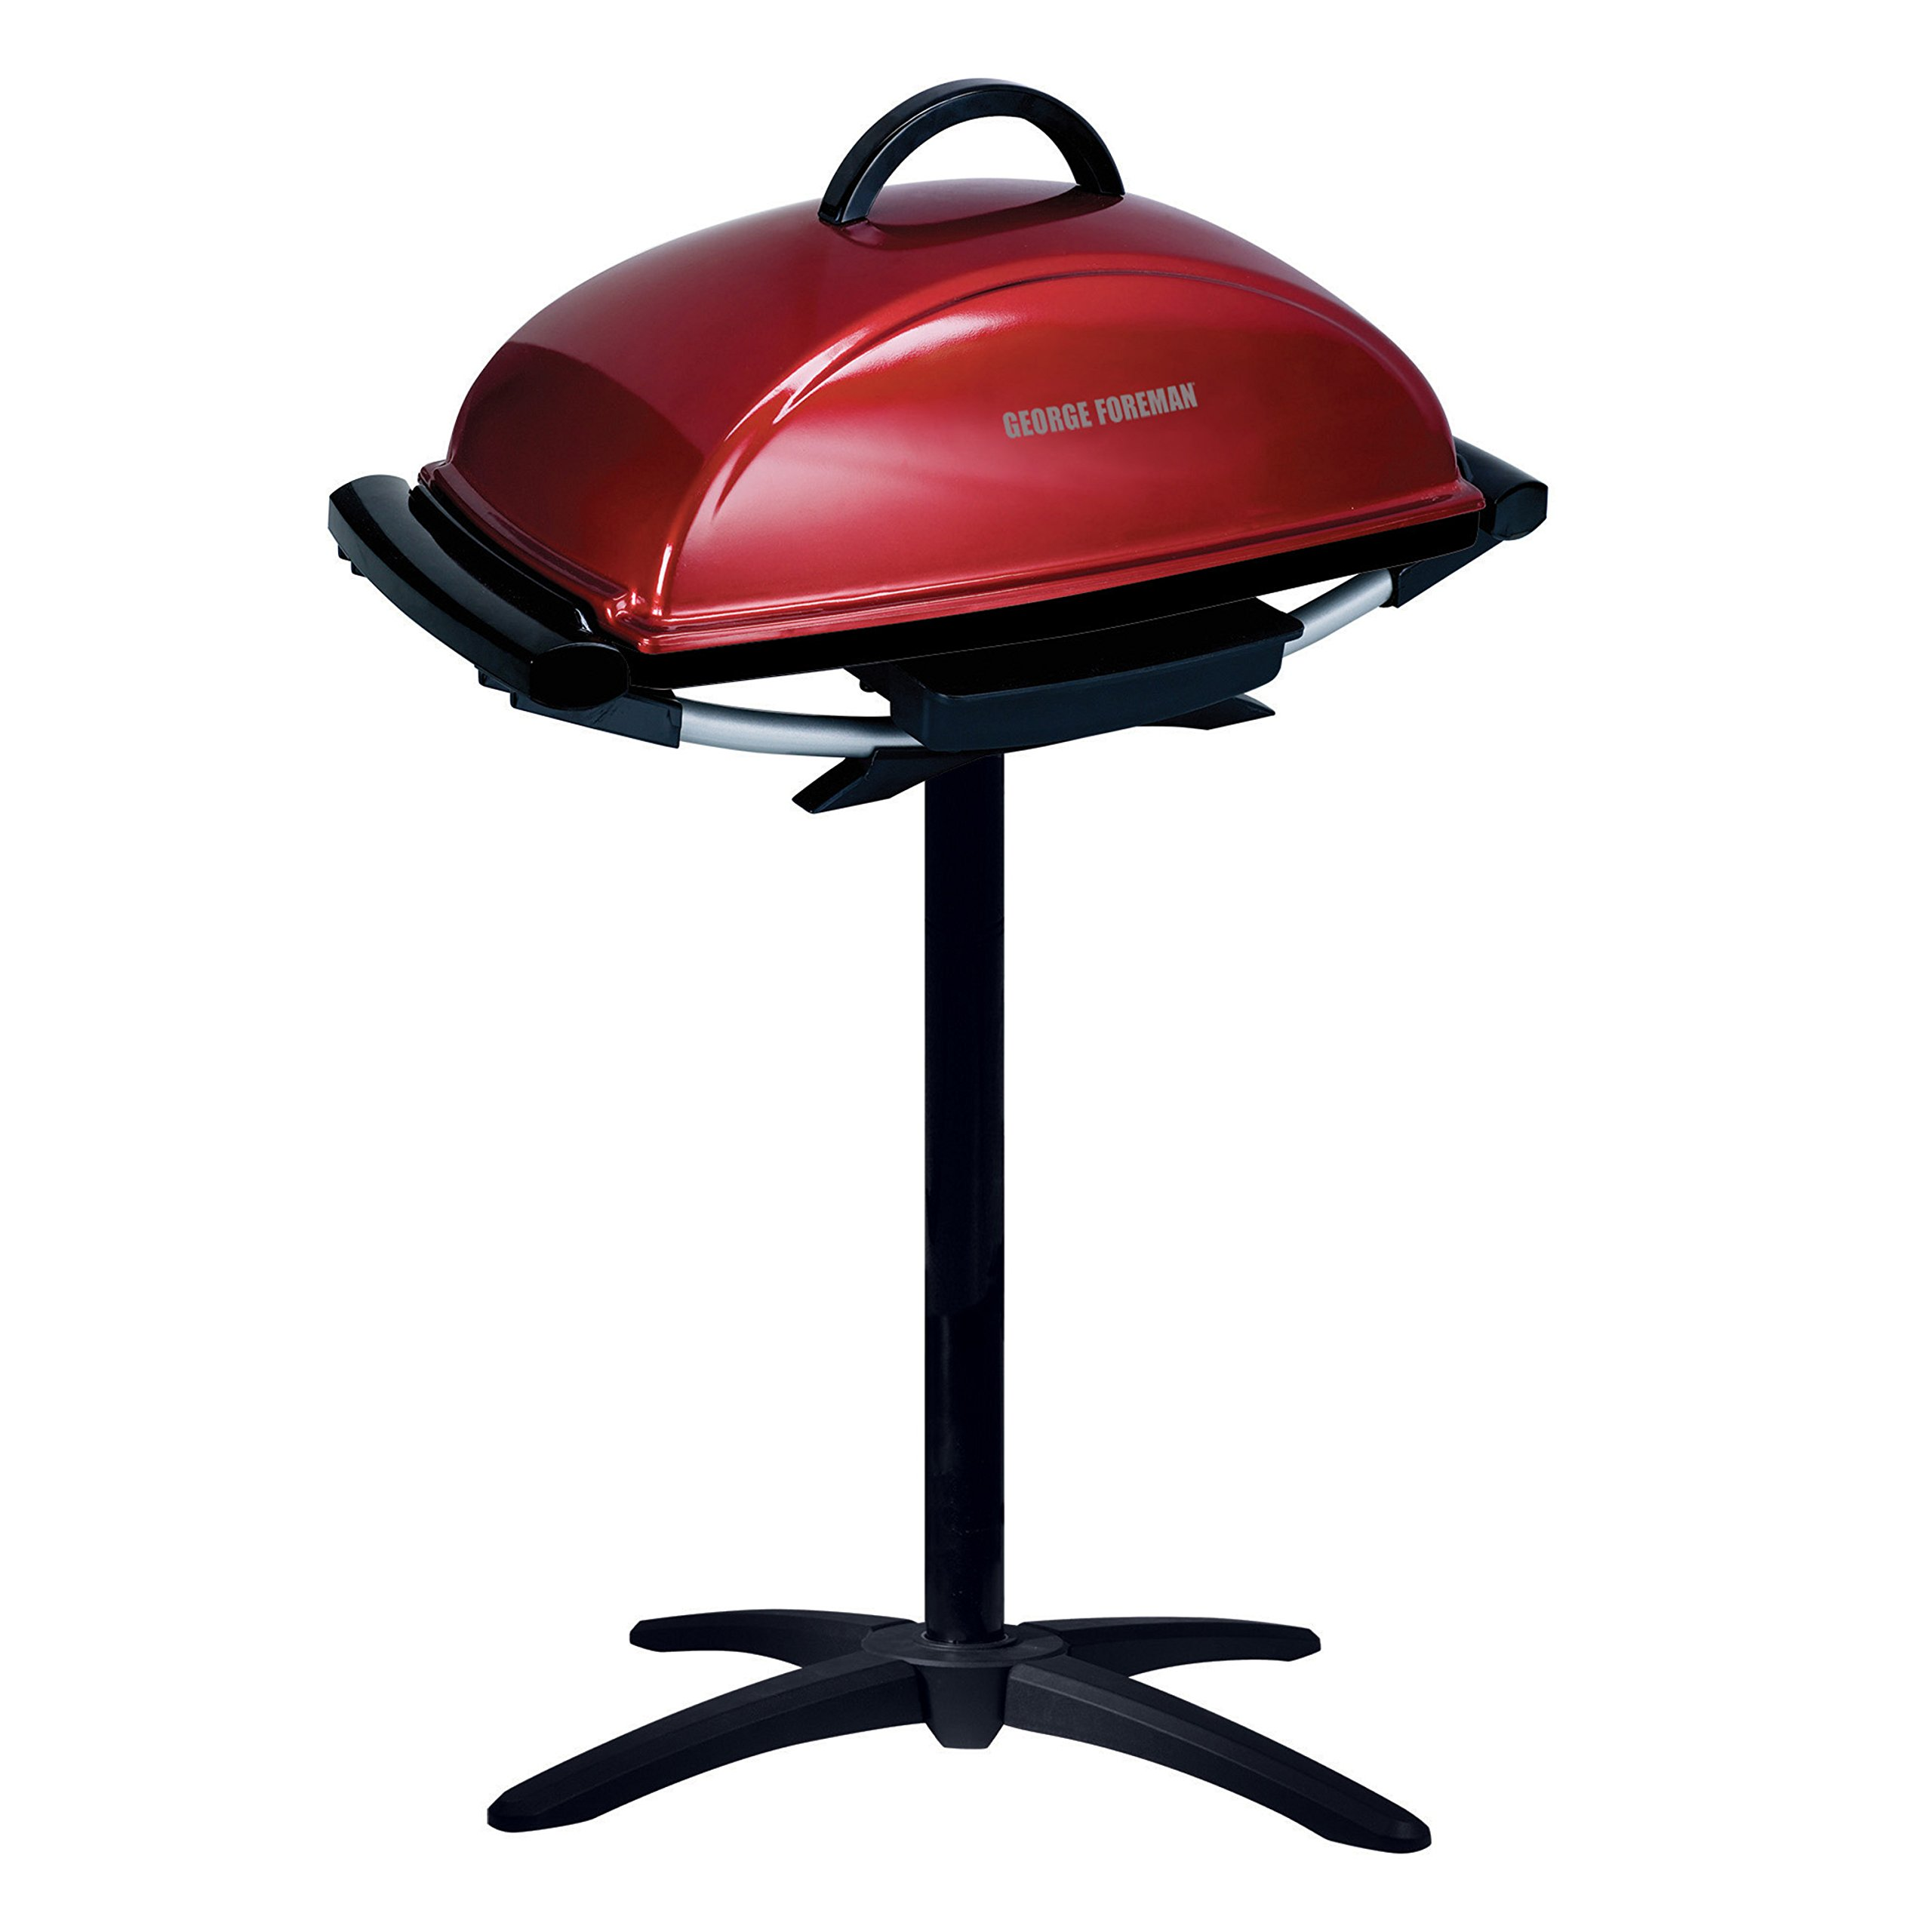 George Foreman 12-Serving Indoor/Outdoor Rectangular Electric Grill, Red, GFO201R by George Foreman